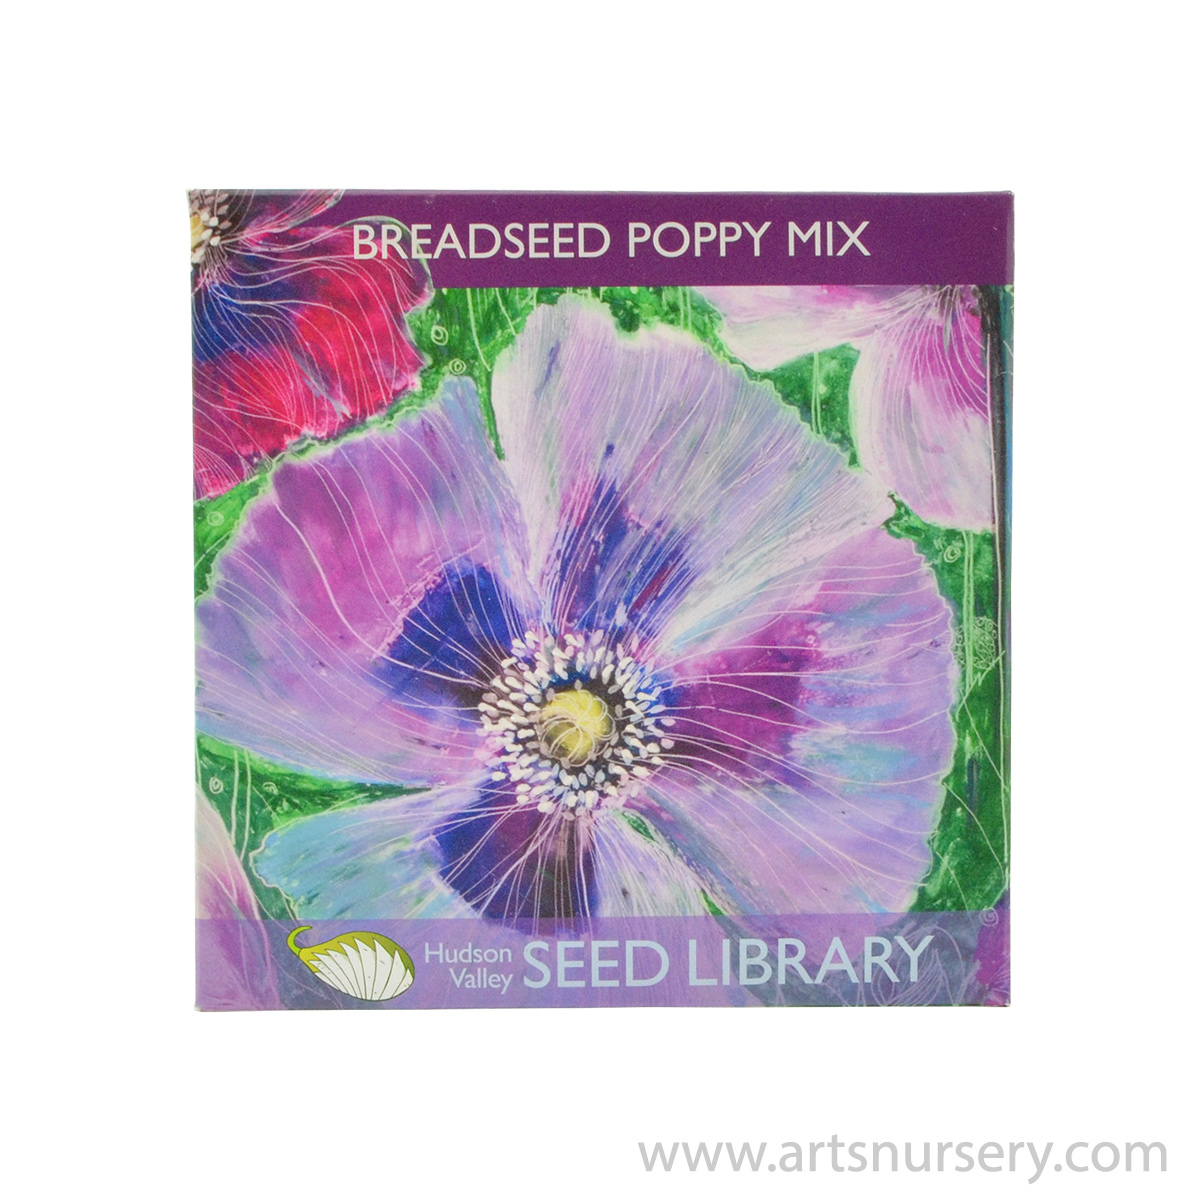 Breadseed Poppy Mix Hudson Valley Seeds